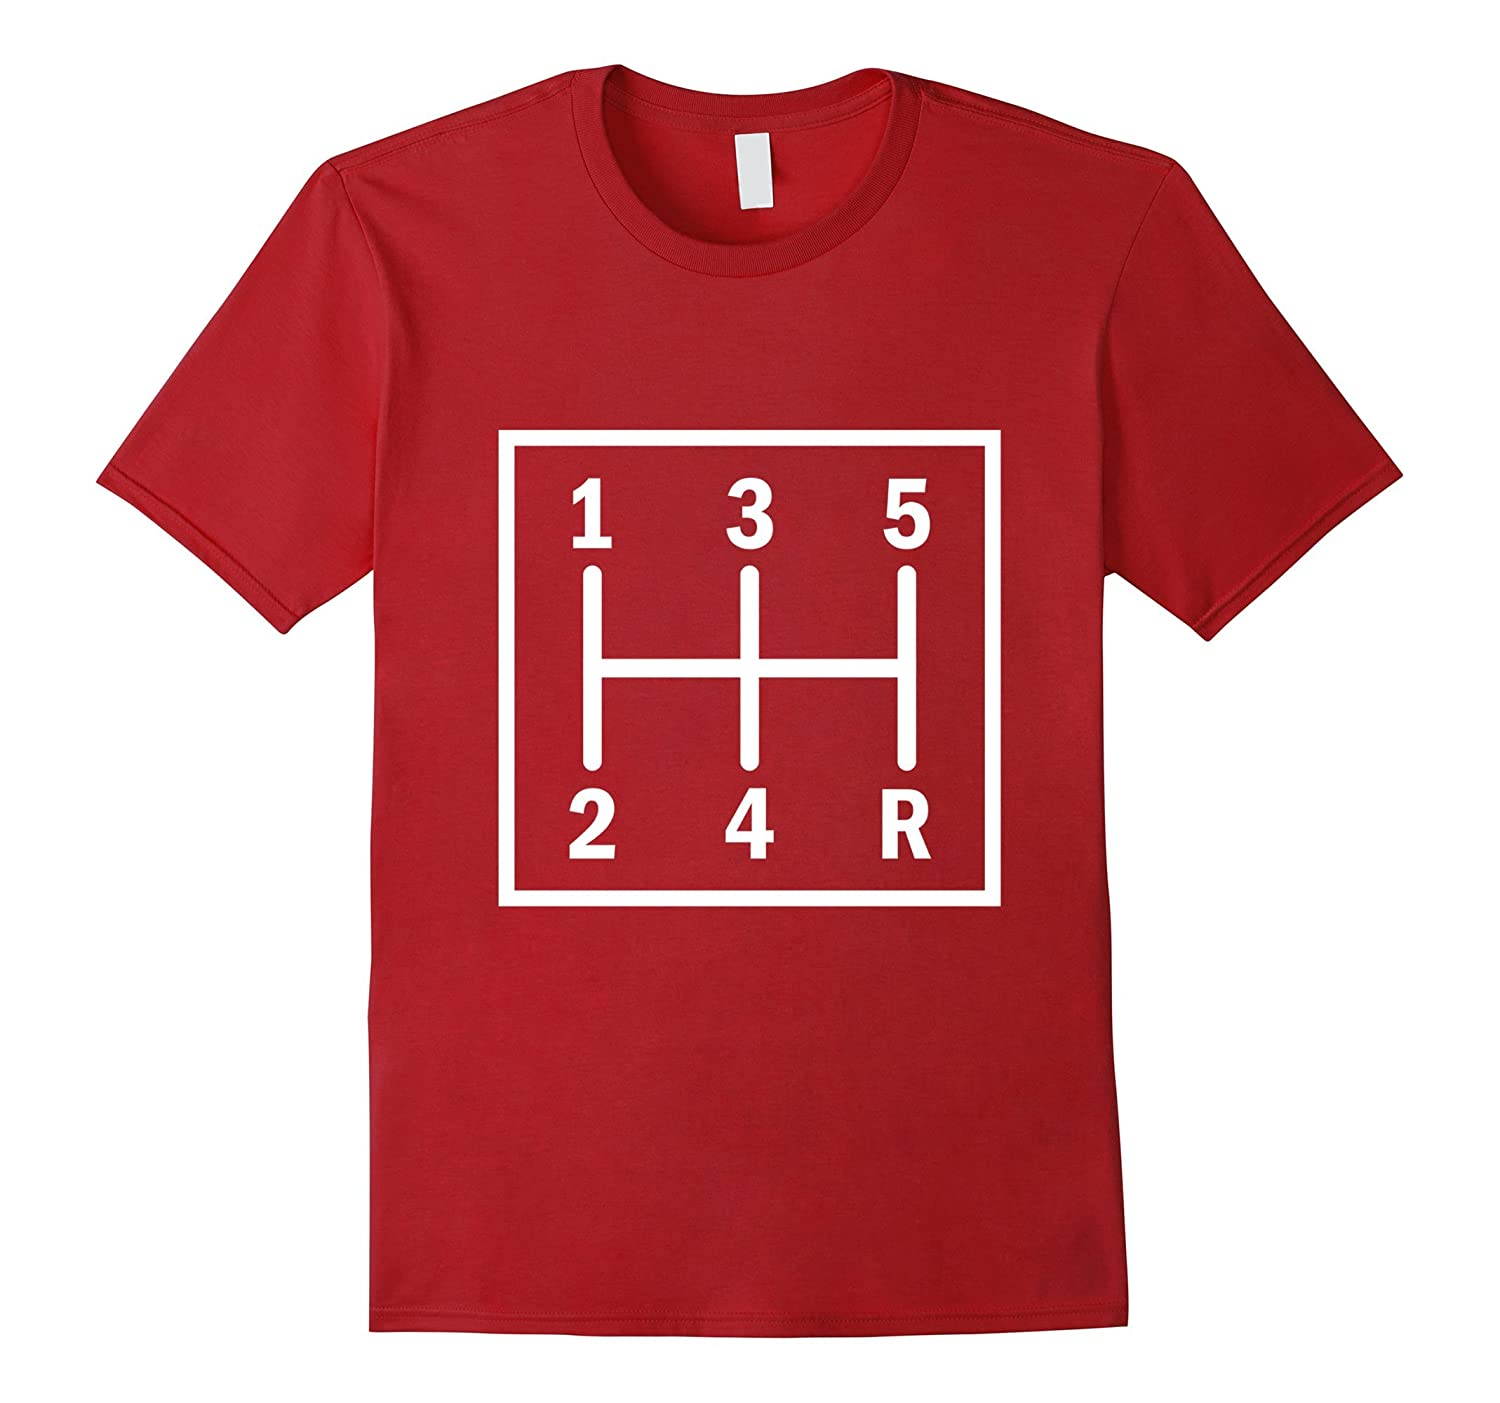 5-speed Stick Shift T-shirt for Racers Truckers Car Buffs